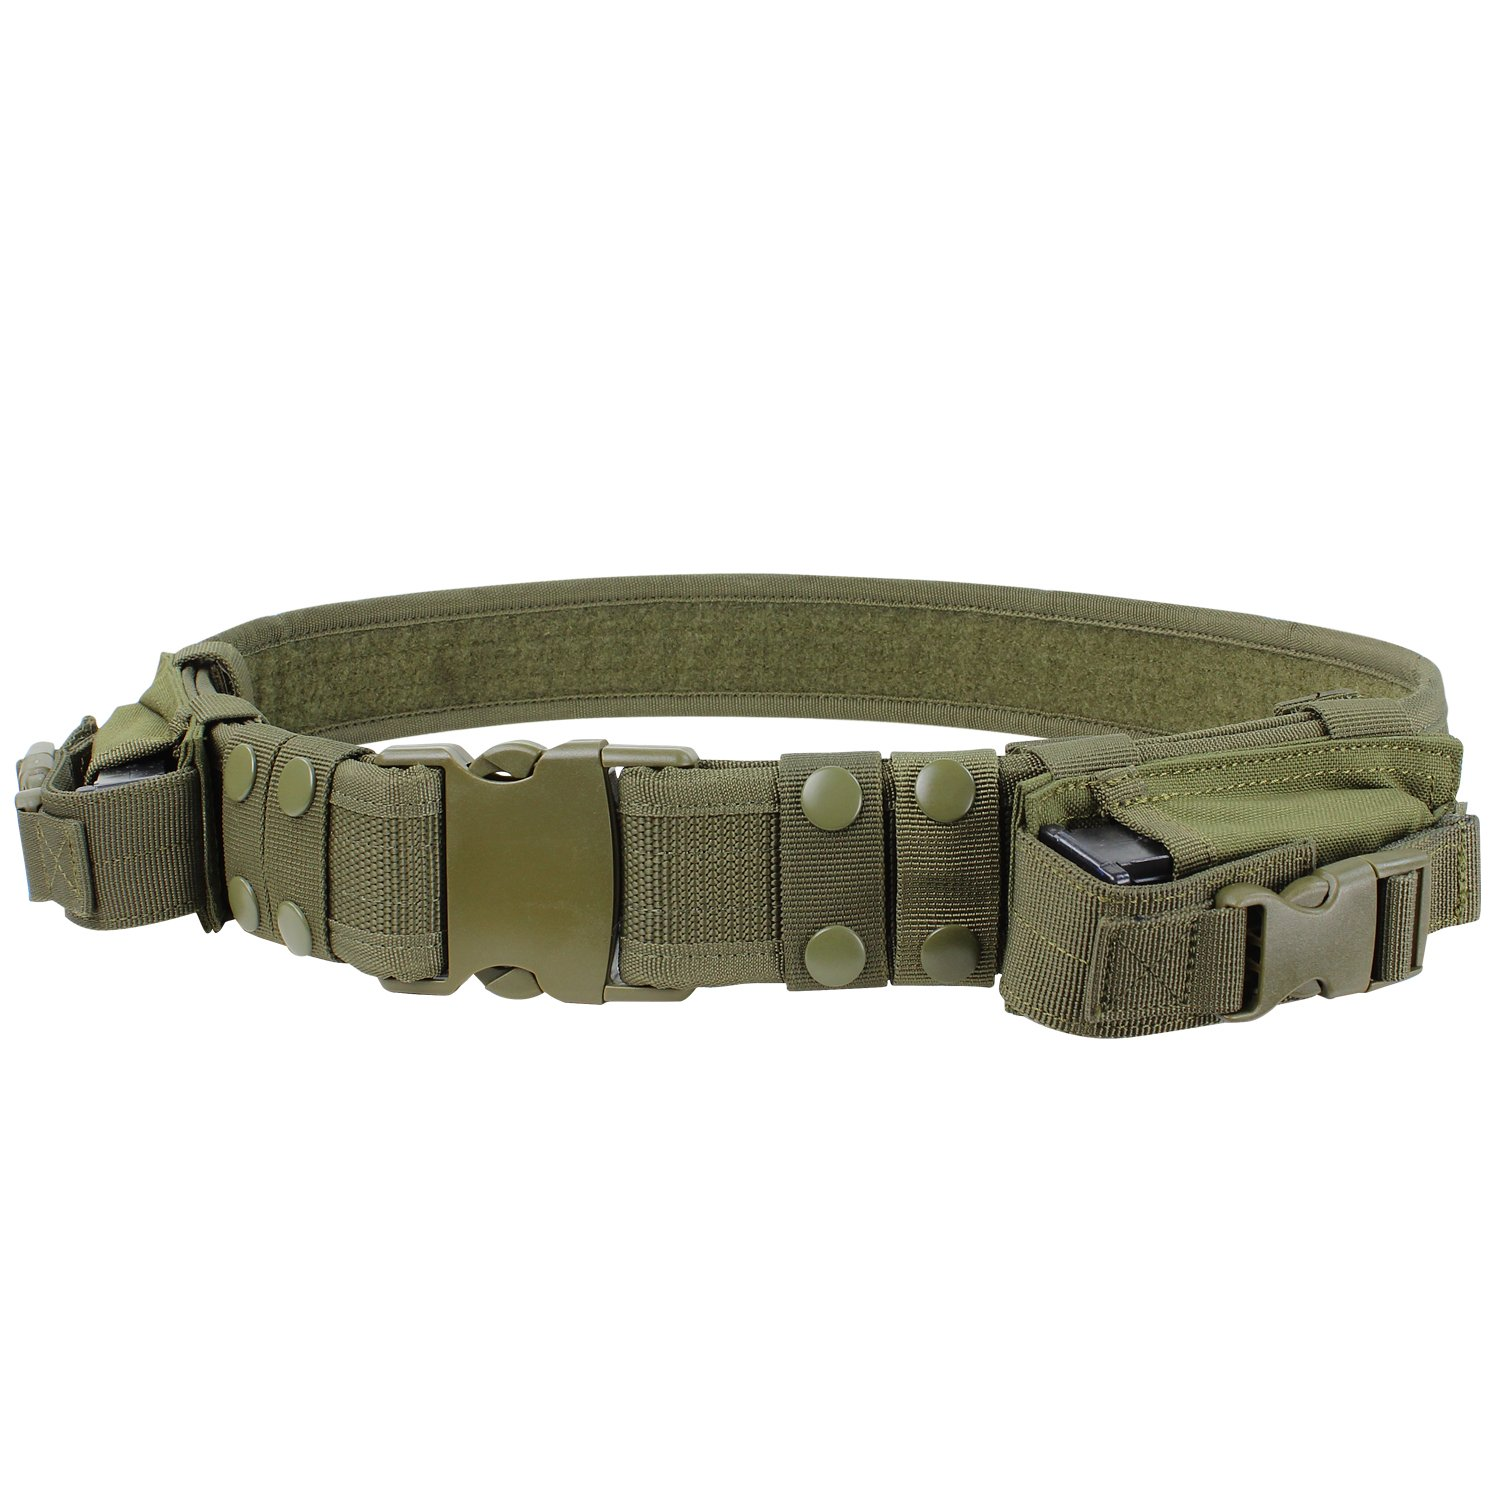 Condor Tactical Belt (Olive Drab, Up to 44-Inch Waist) TB-001